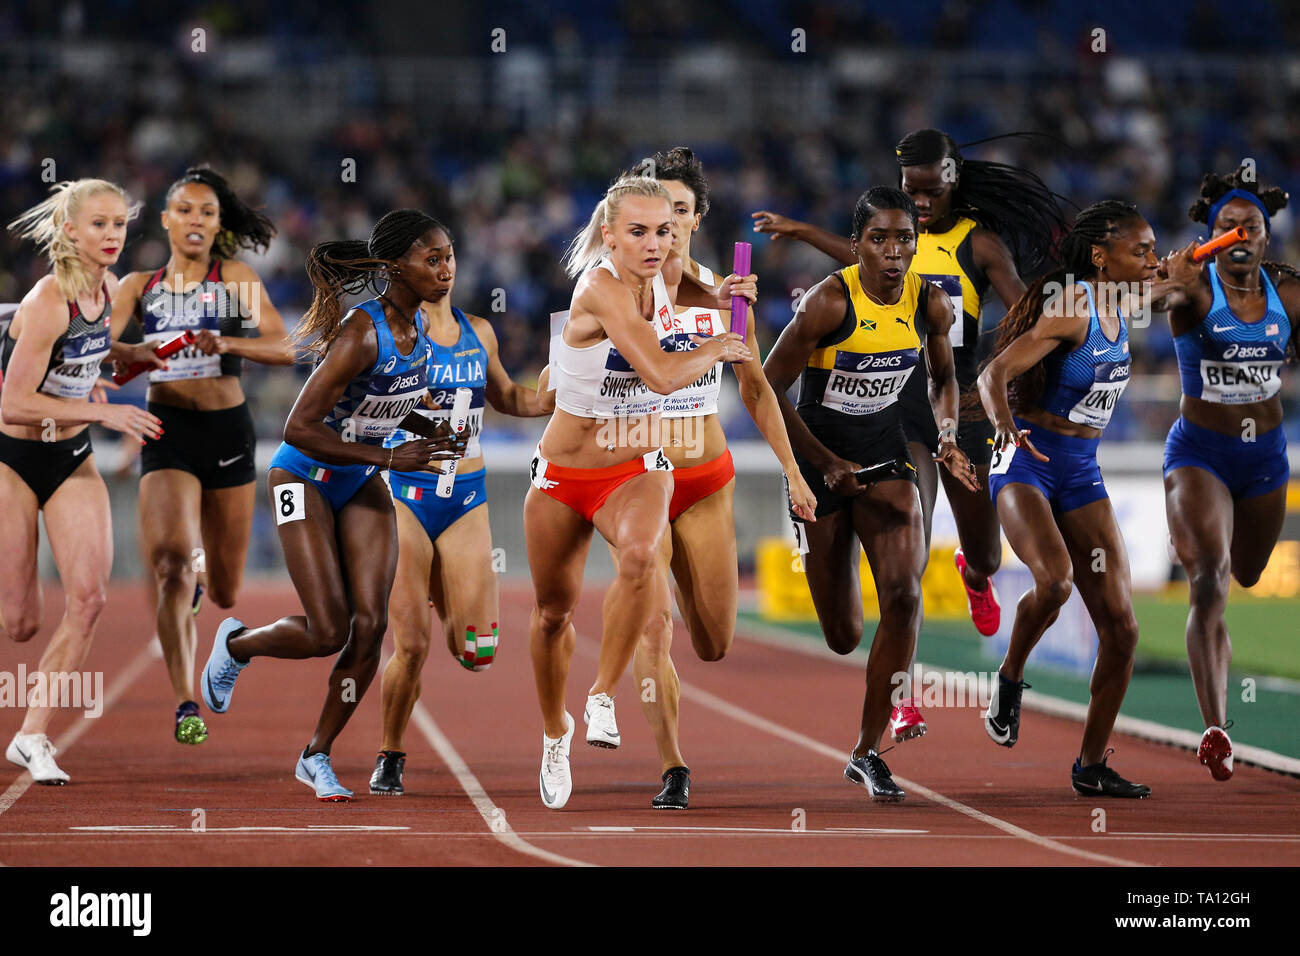 YOKOHAMA, JAPAN - MAY 12: Justyna Swiety-Ersetic of Poland in the women's 4x400m final during Day 2 of the 2019 IAAF World Relay Championships at the Nissan Stadium on Sunday May 12, 2019 in Yokohama, Japan. (Photo by Roger Sedres for the IAAF) - Stock Image